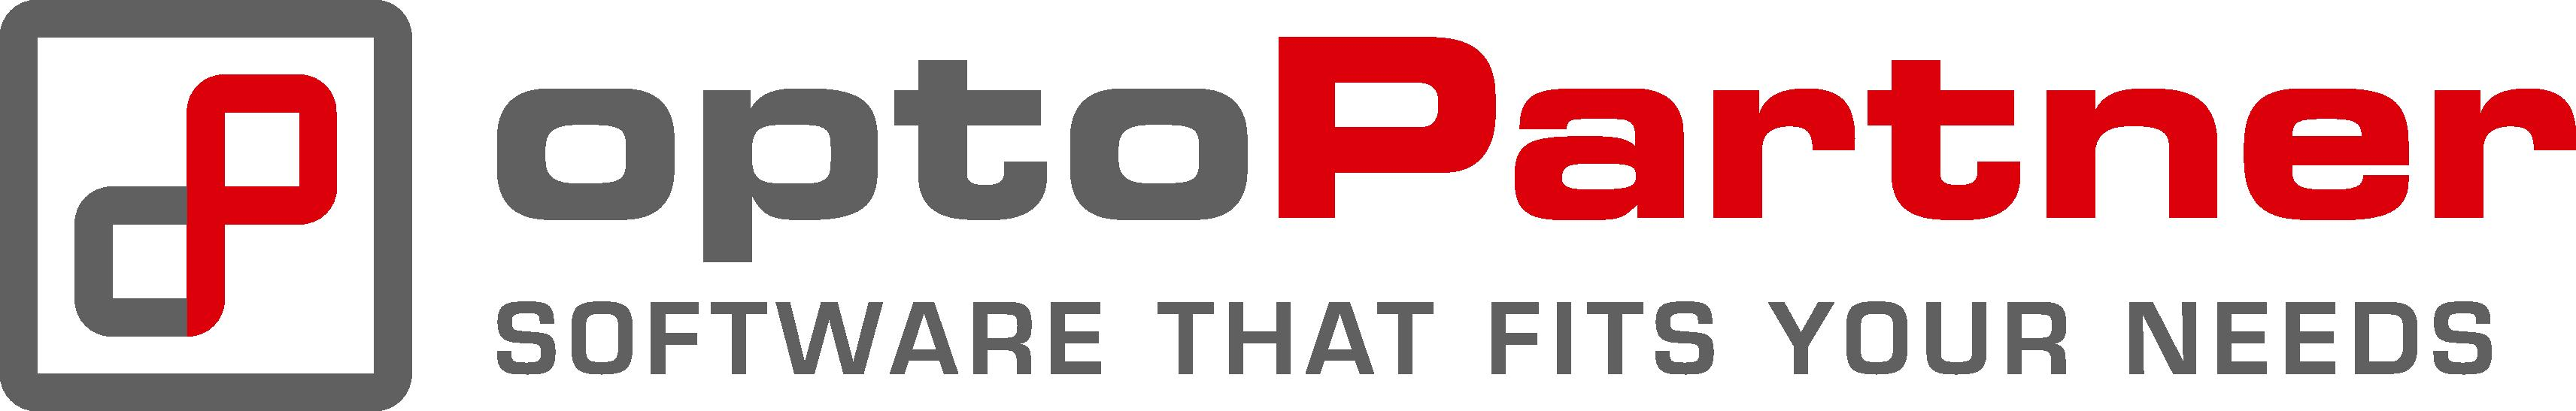 OPTOPARTNER